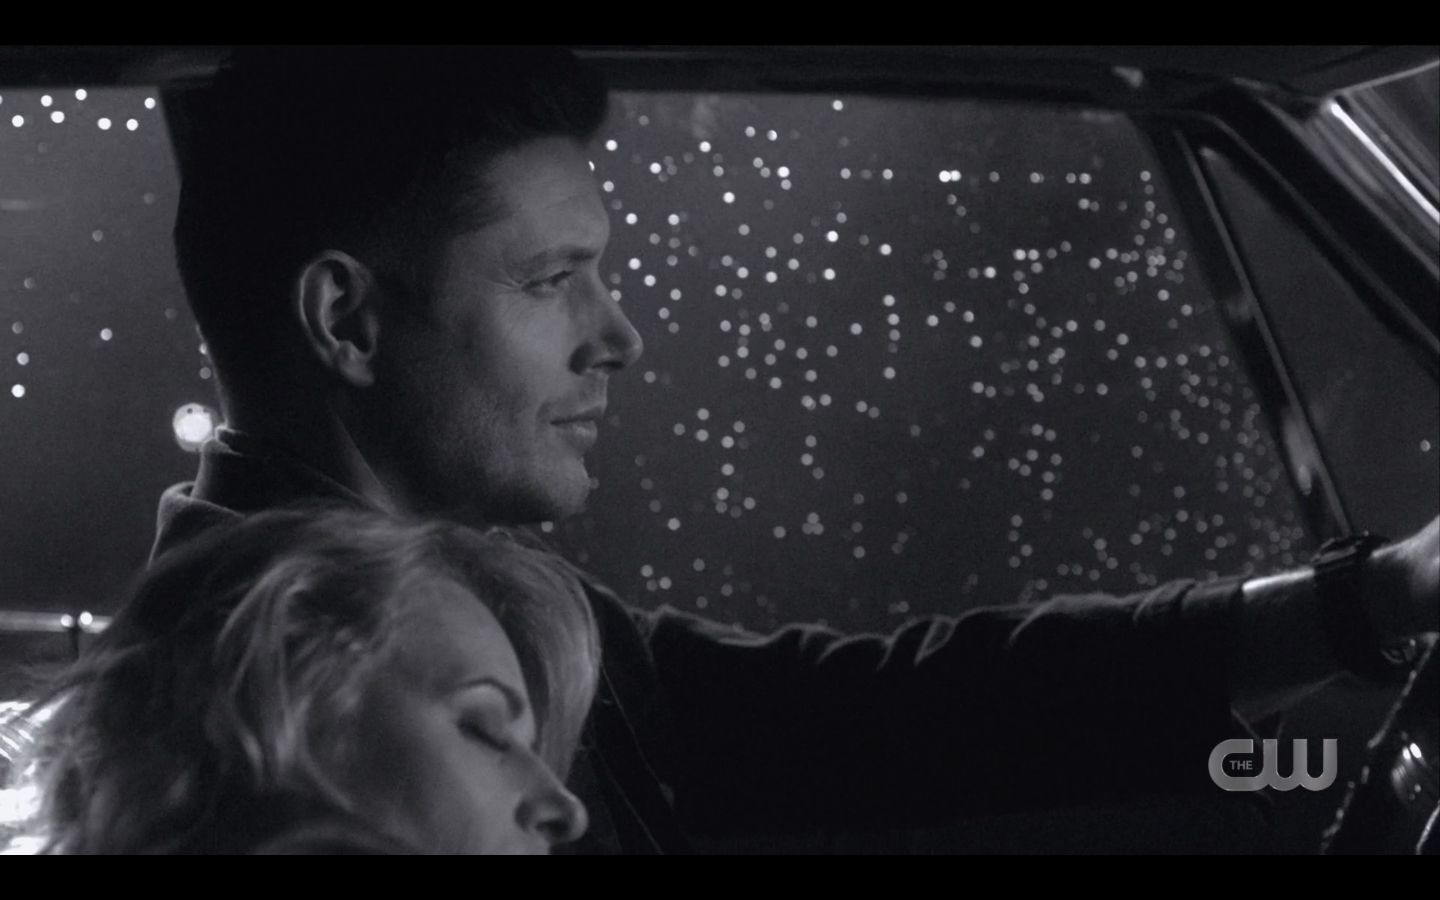 Dean Winchester smile flashback with Mary in Impala SPN